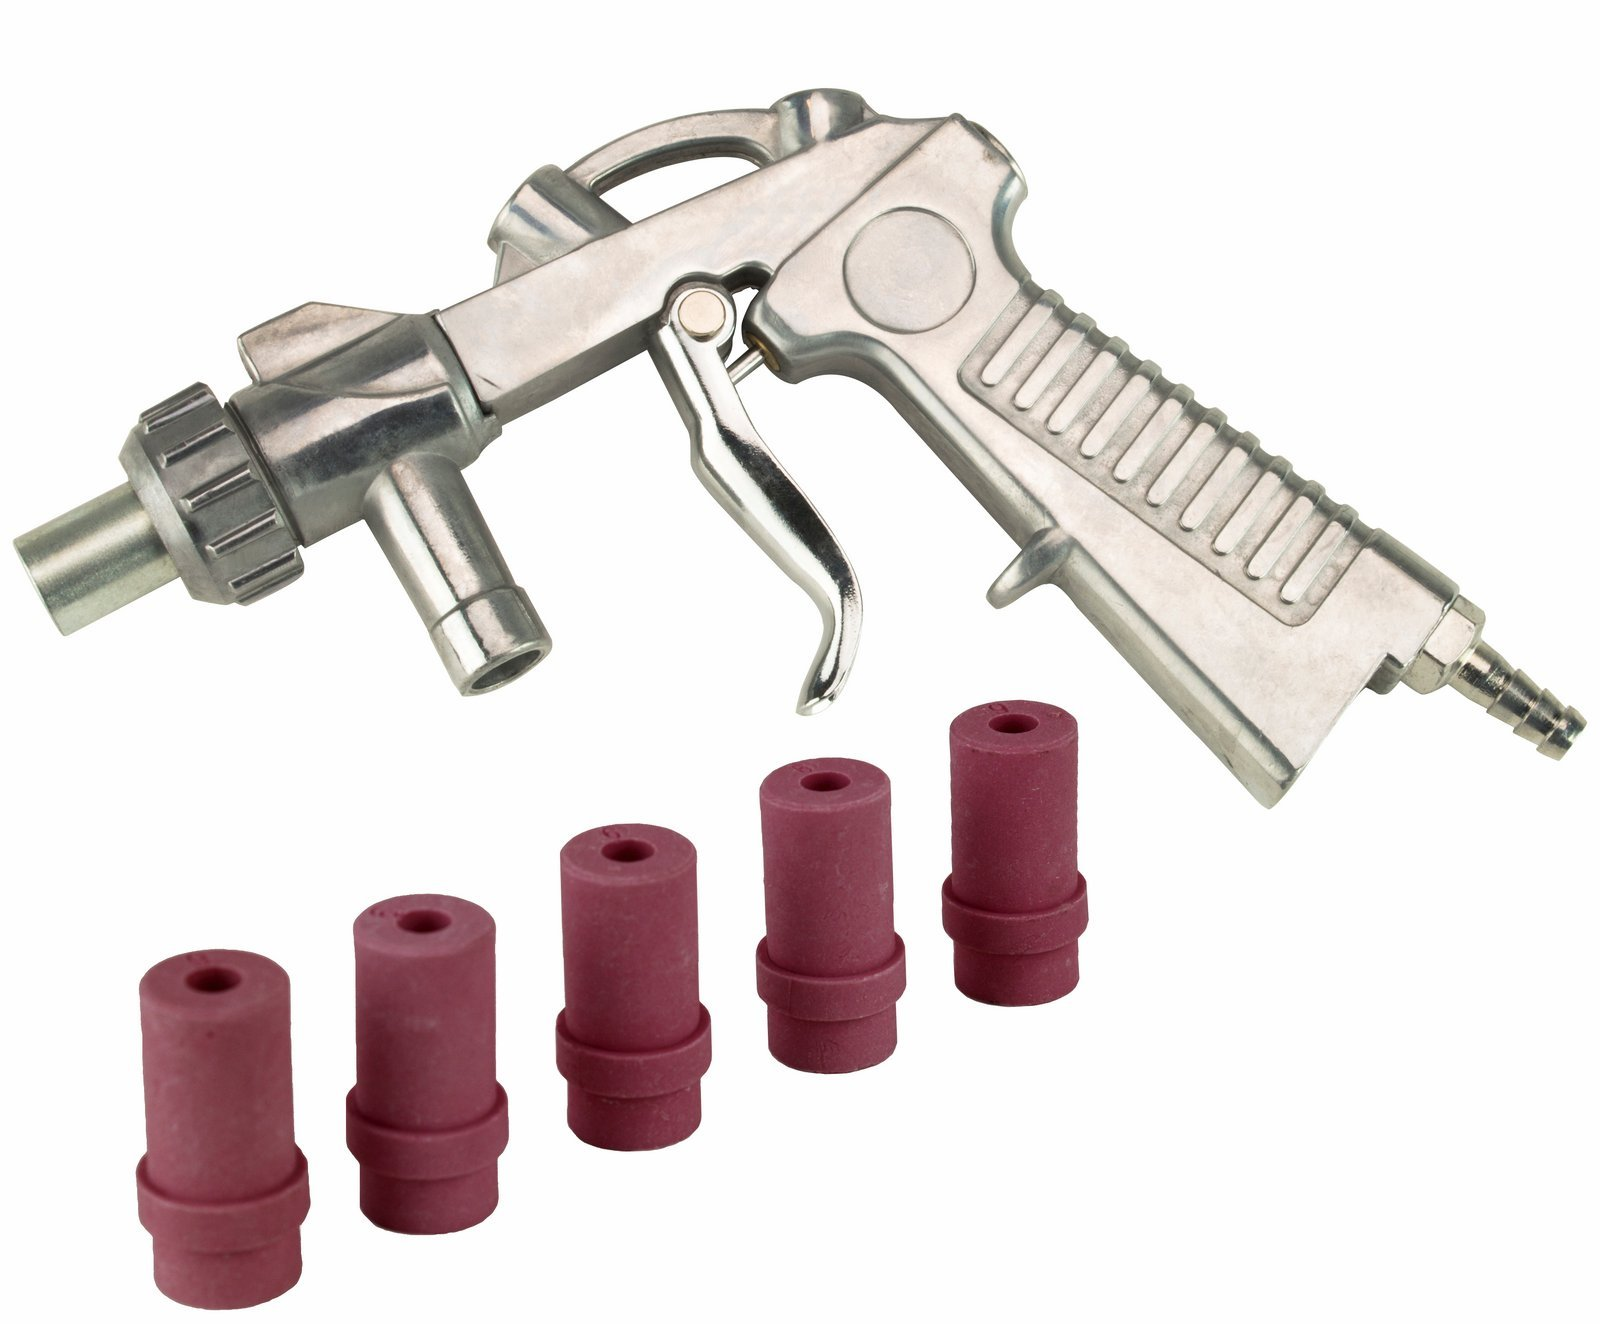 Dragway Tools Blast Media Gun & (5) 6MM Nozzles for 25 60 90 Sandblast Cabinet